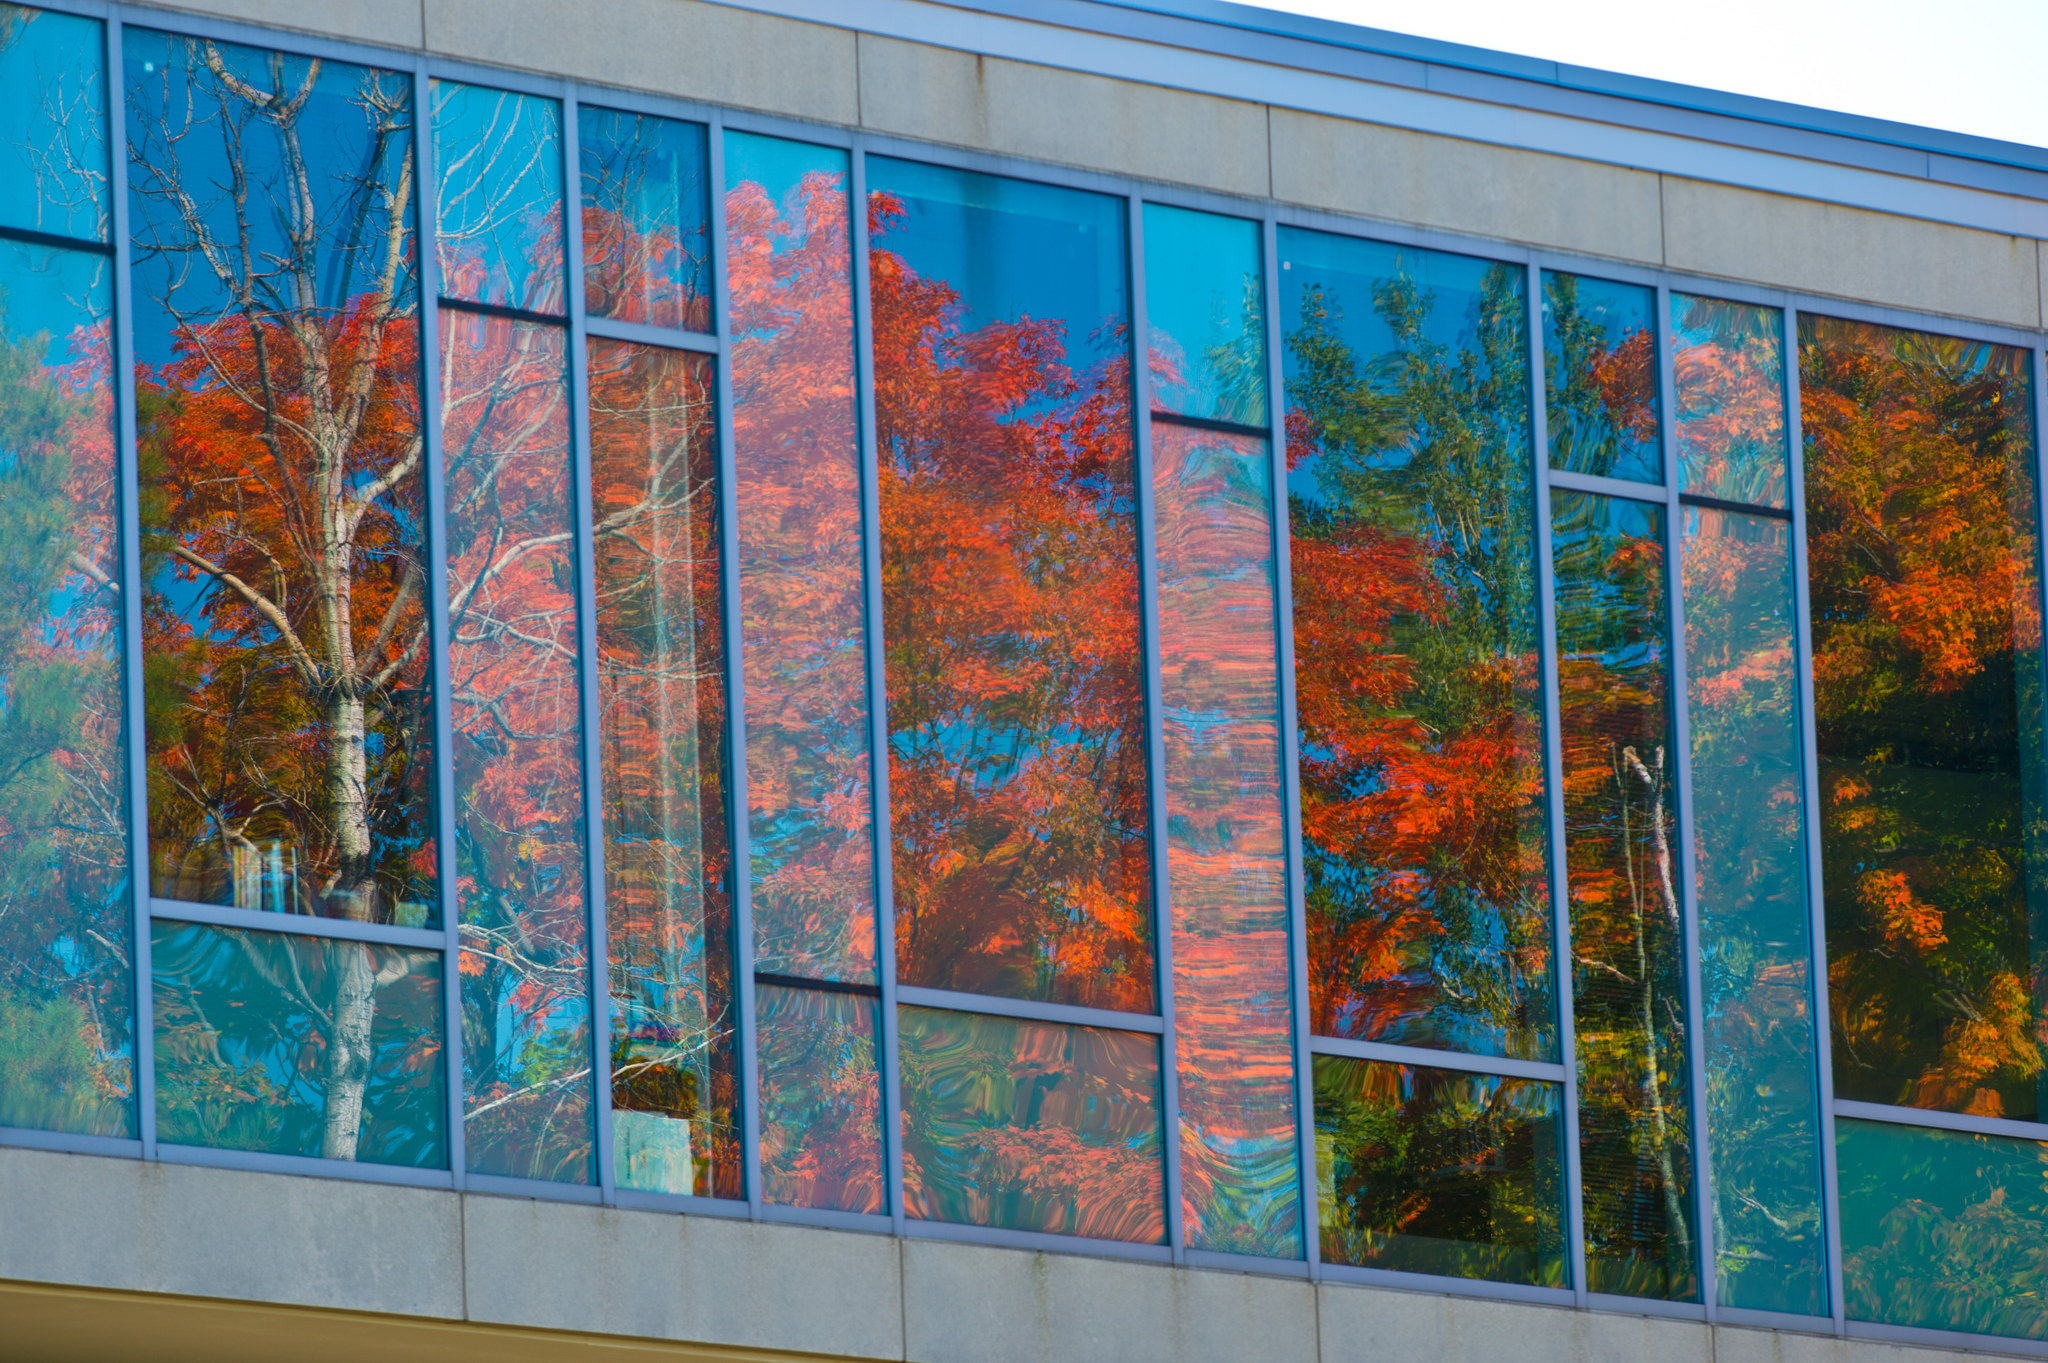 Fall color in window of building